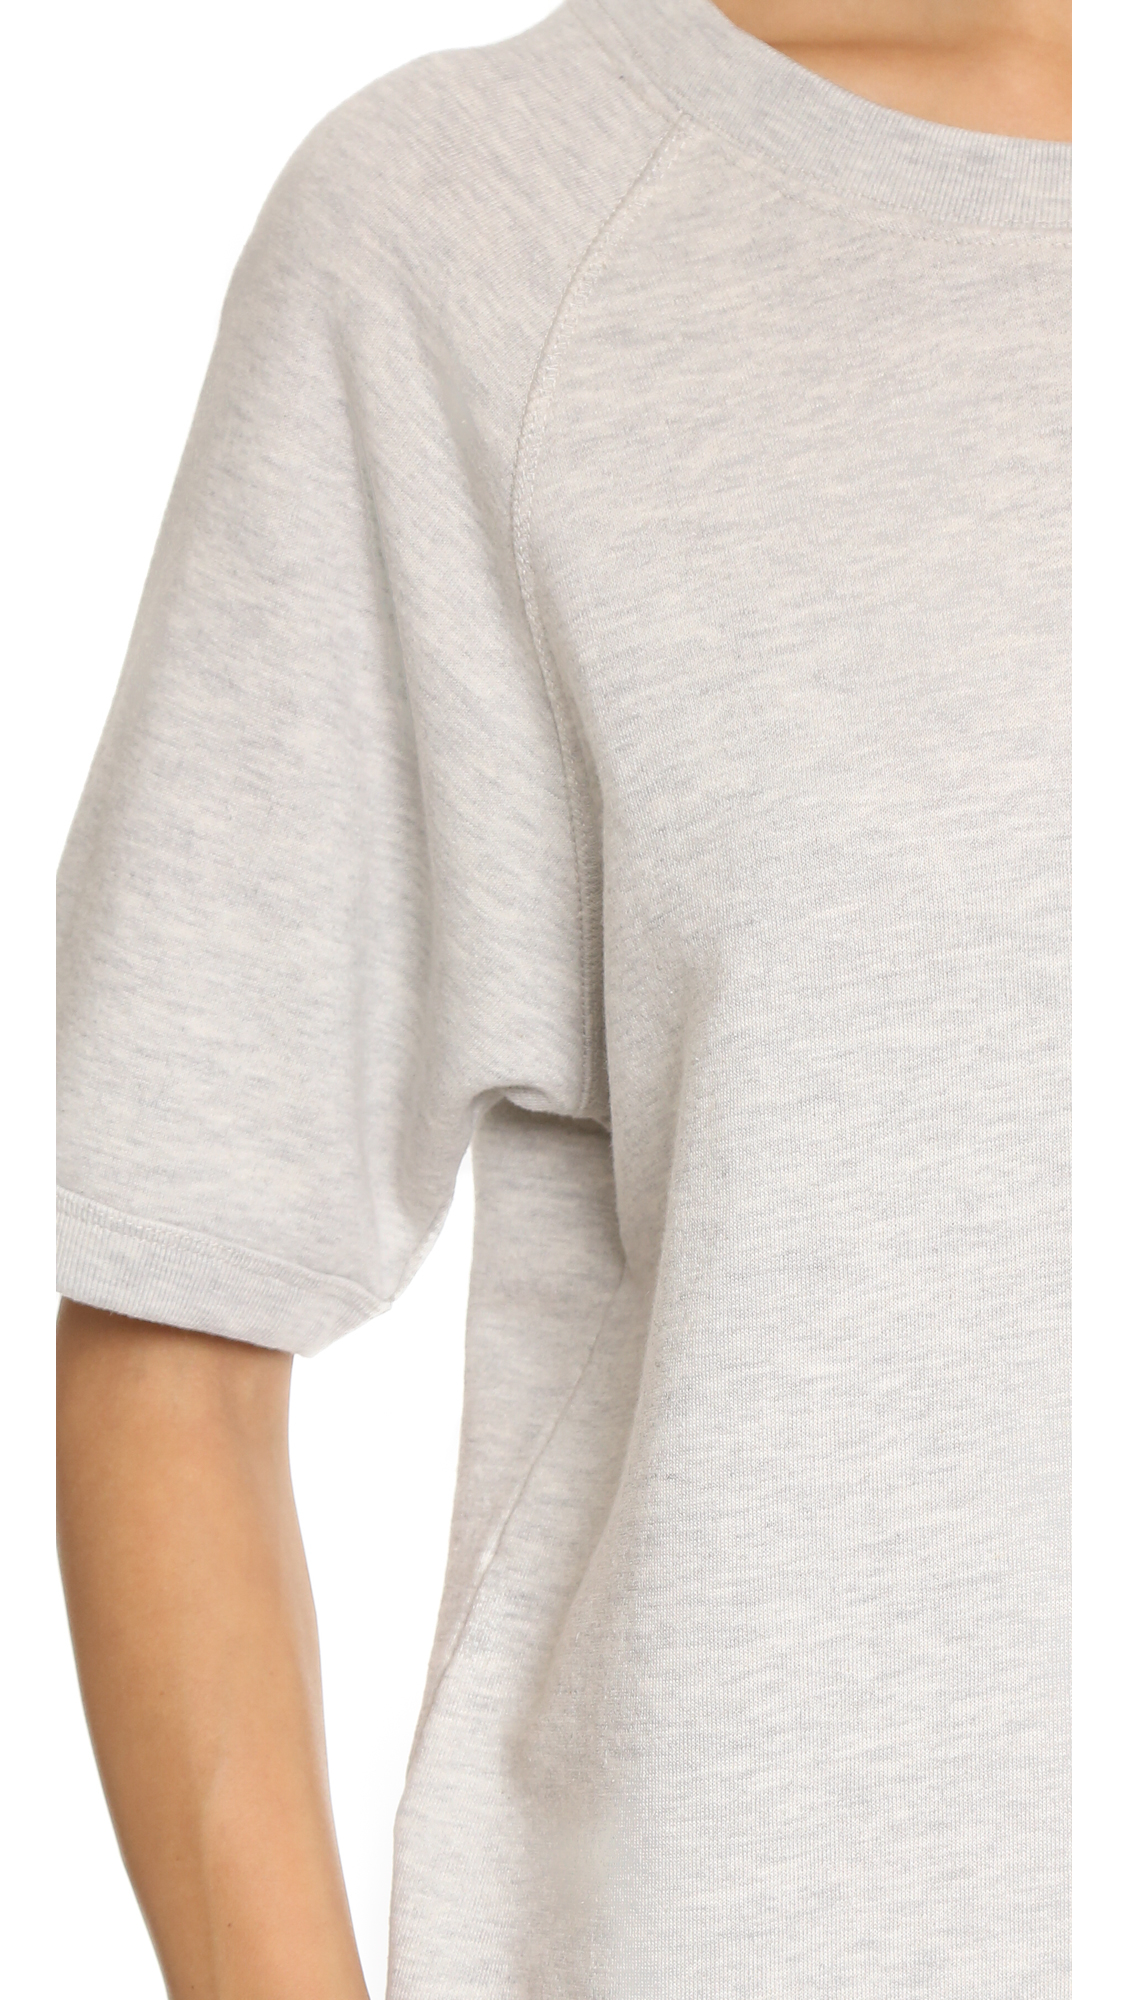 Sincerely jules Cara Short Sleeve Sweatshirt in White | Lyst